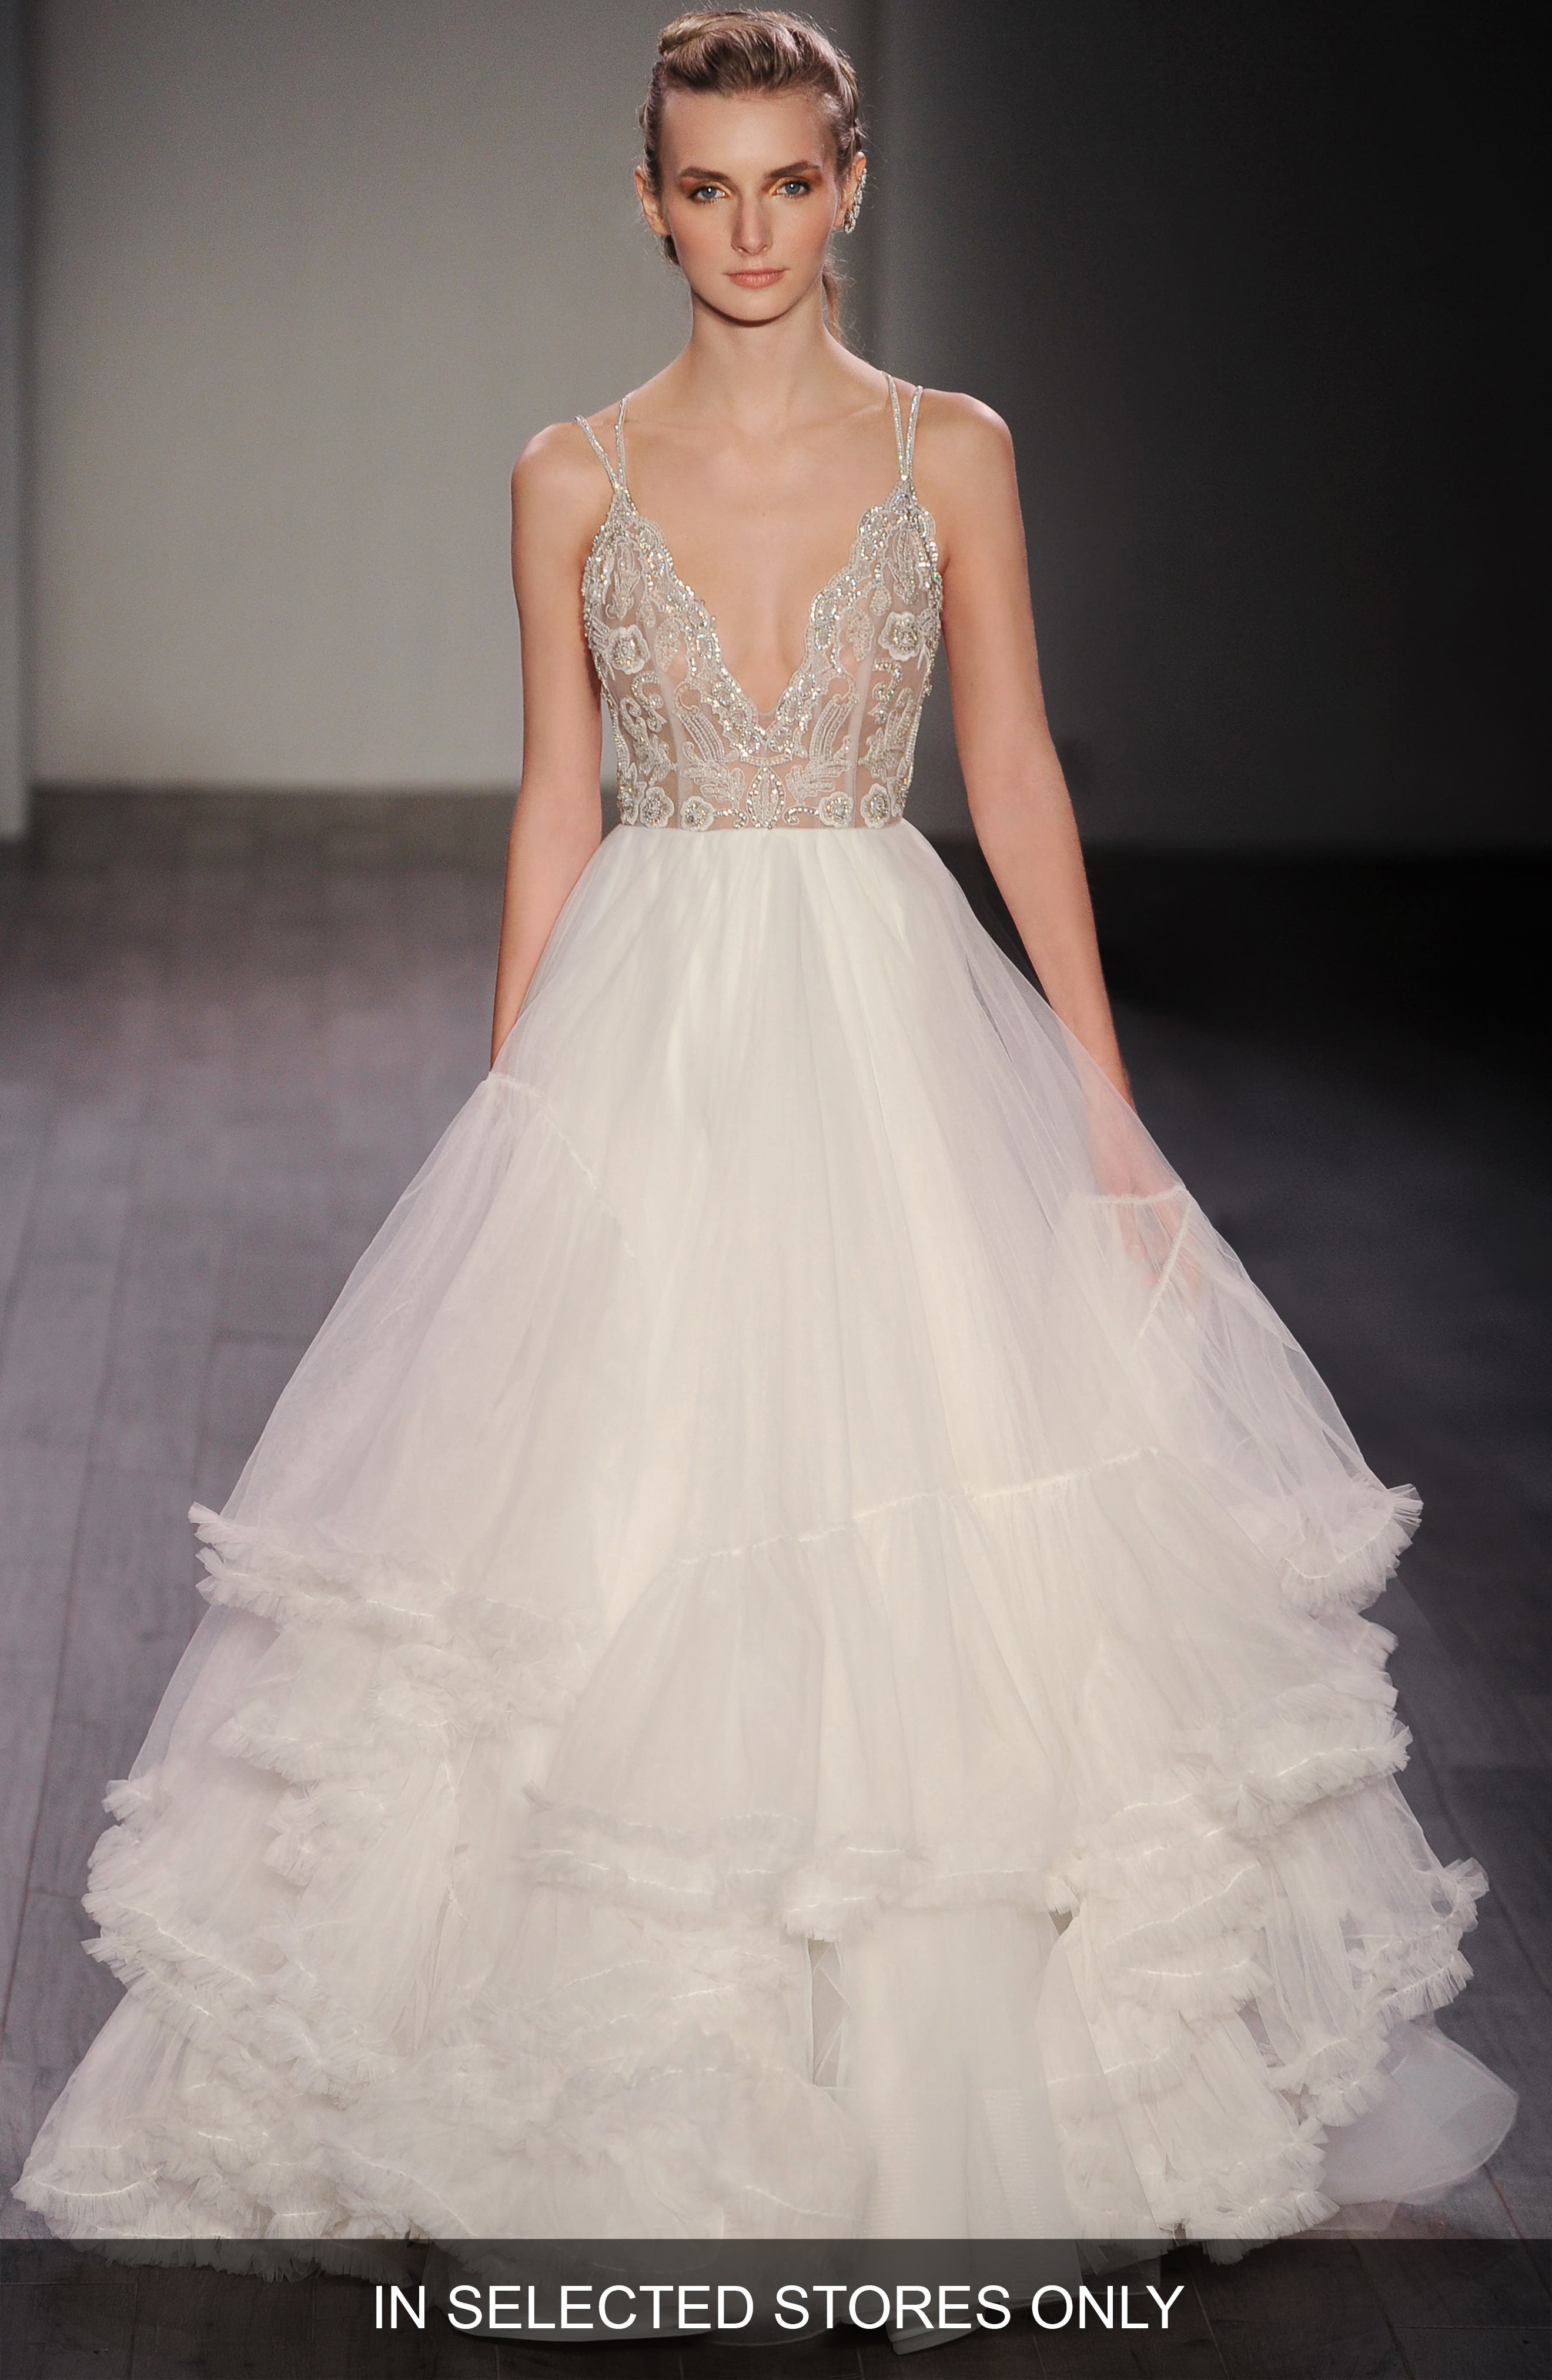 Georgie Embellished Bodice Tulle Ballgown,                             Main thumbnail 1, color,                             Ivory